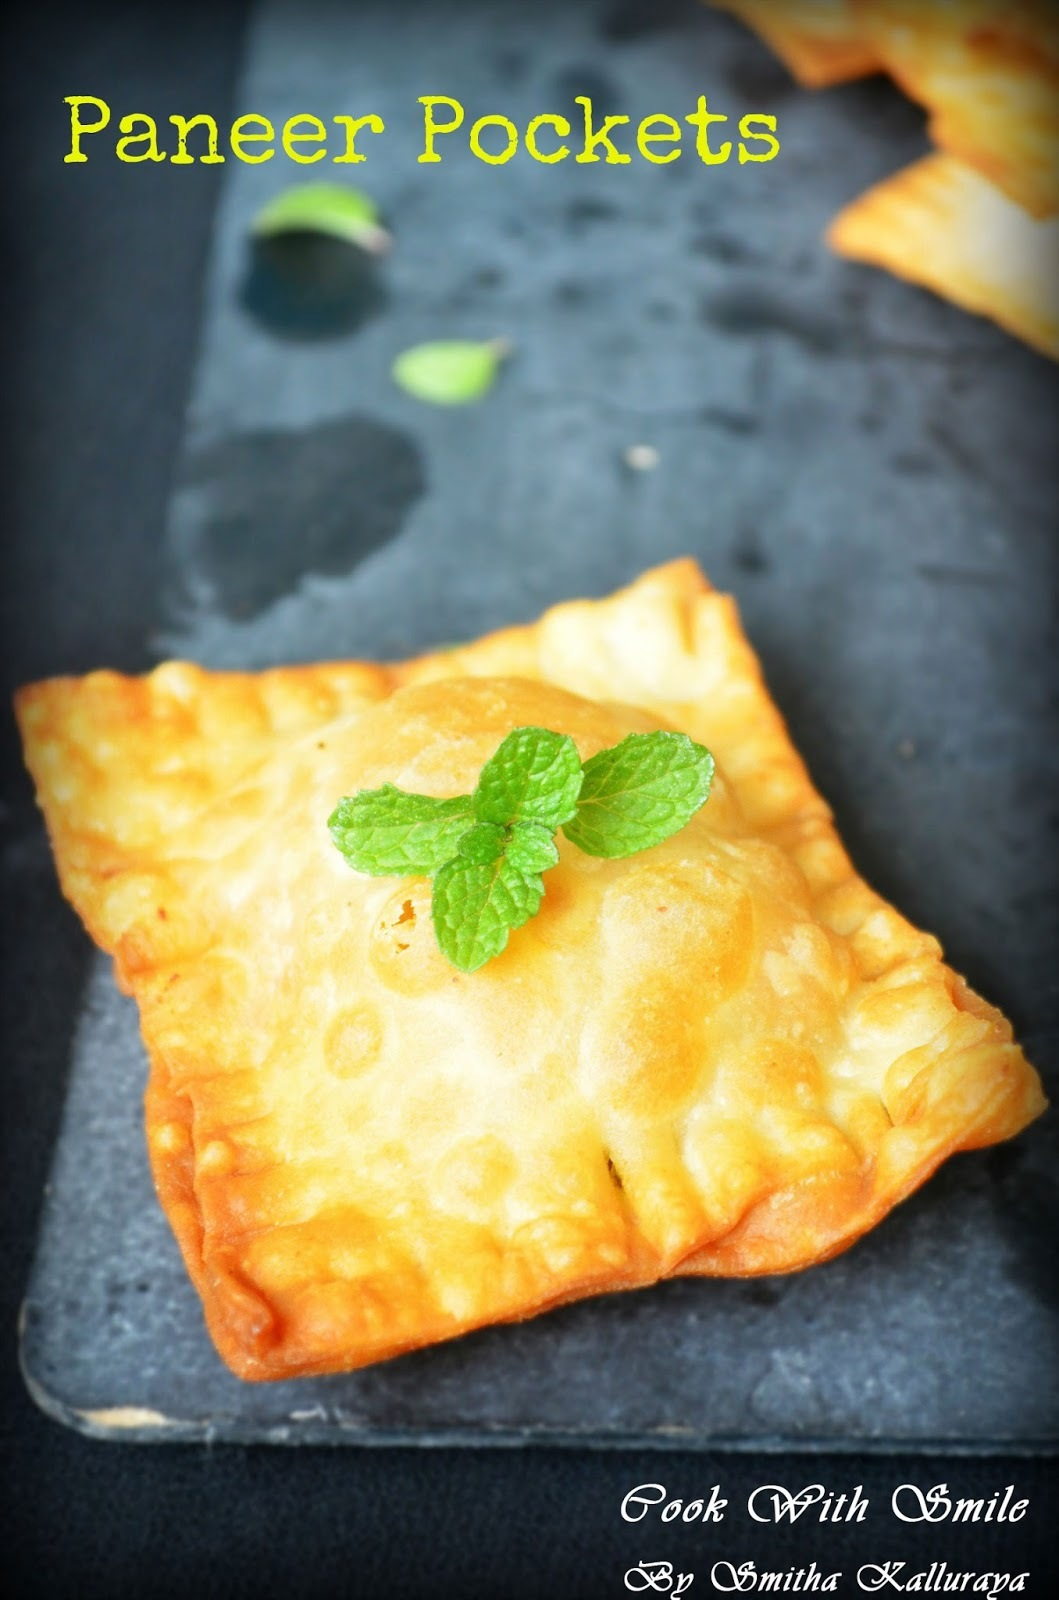 PANEER POCKETS / PANEER SQUARES - MOTHER'S RECIPE CONTEST